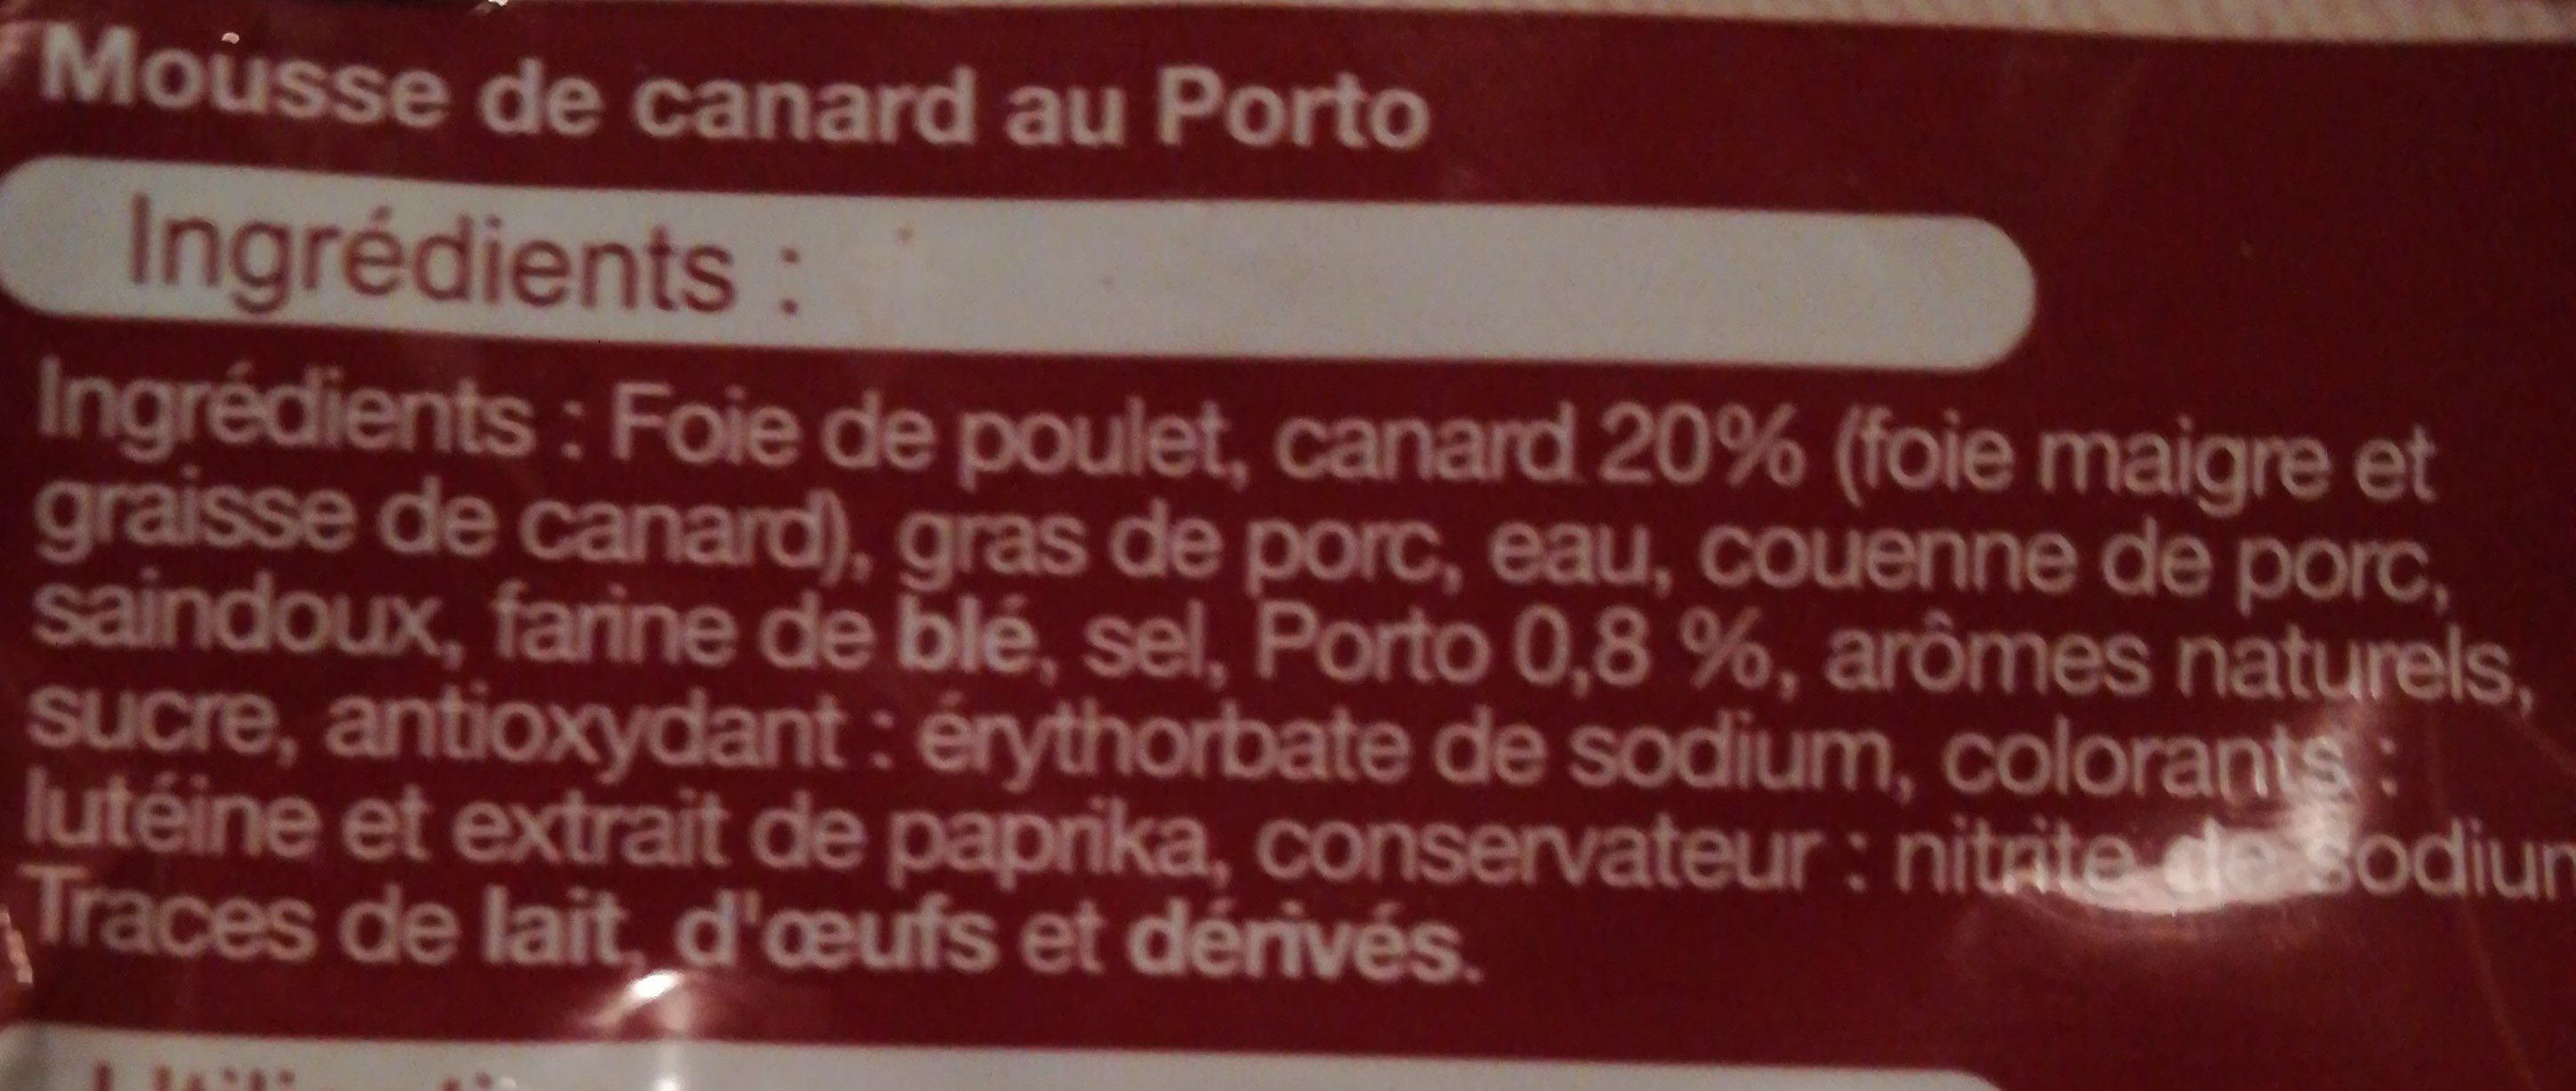 Mousse de canard au porto - Ingredients